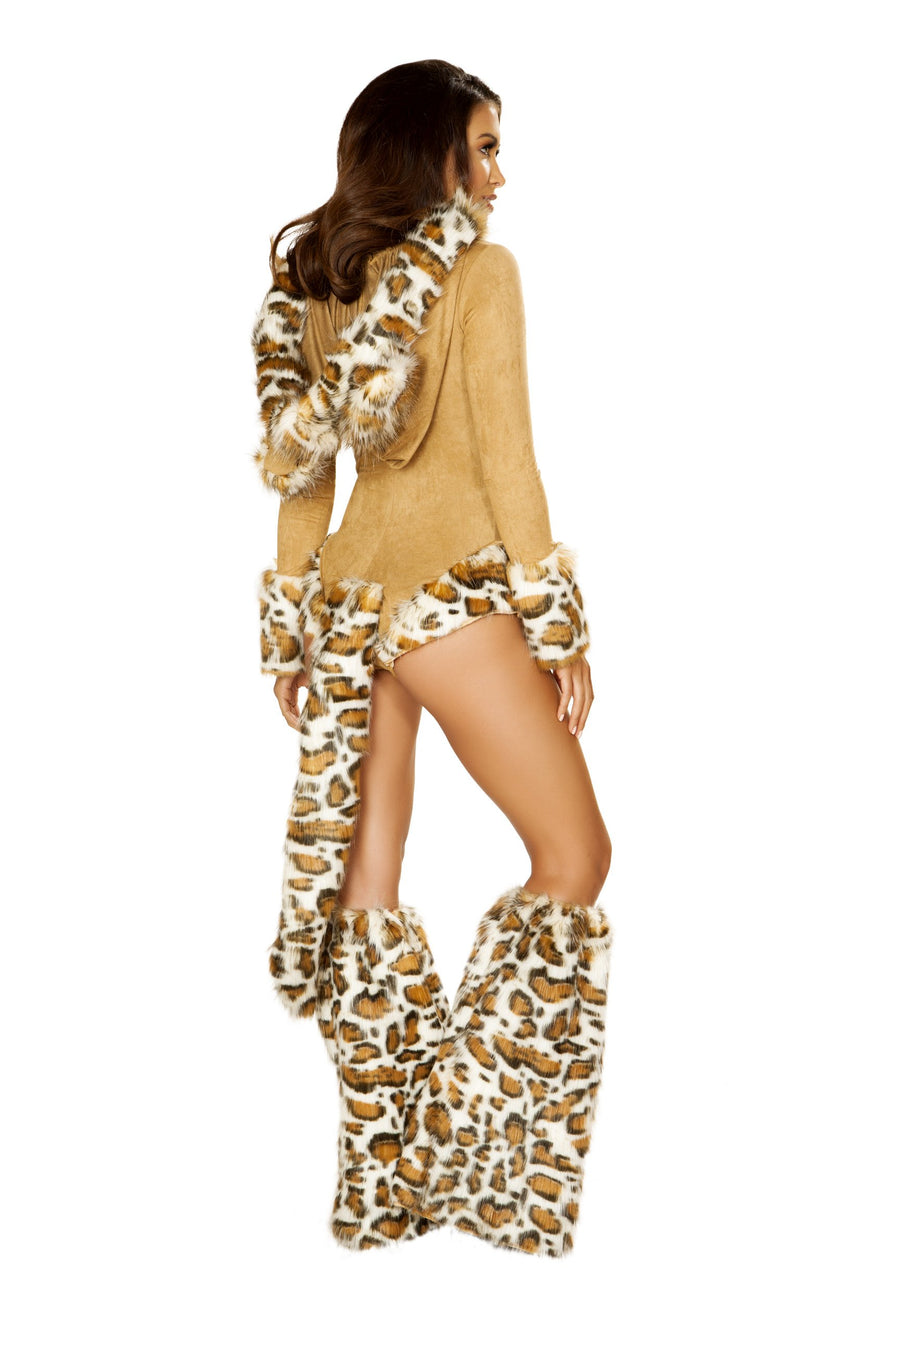 Leopard Princess Costume - Costumes, Roma - YourLamode